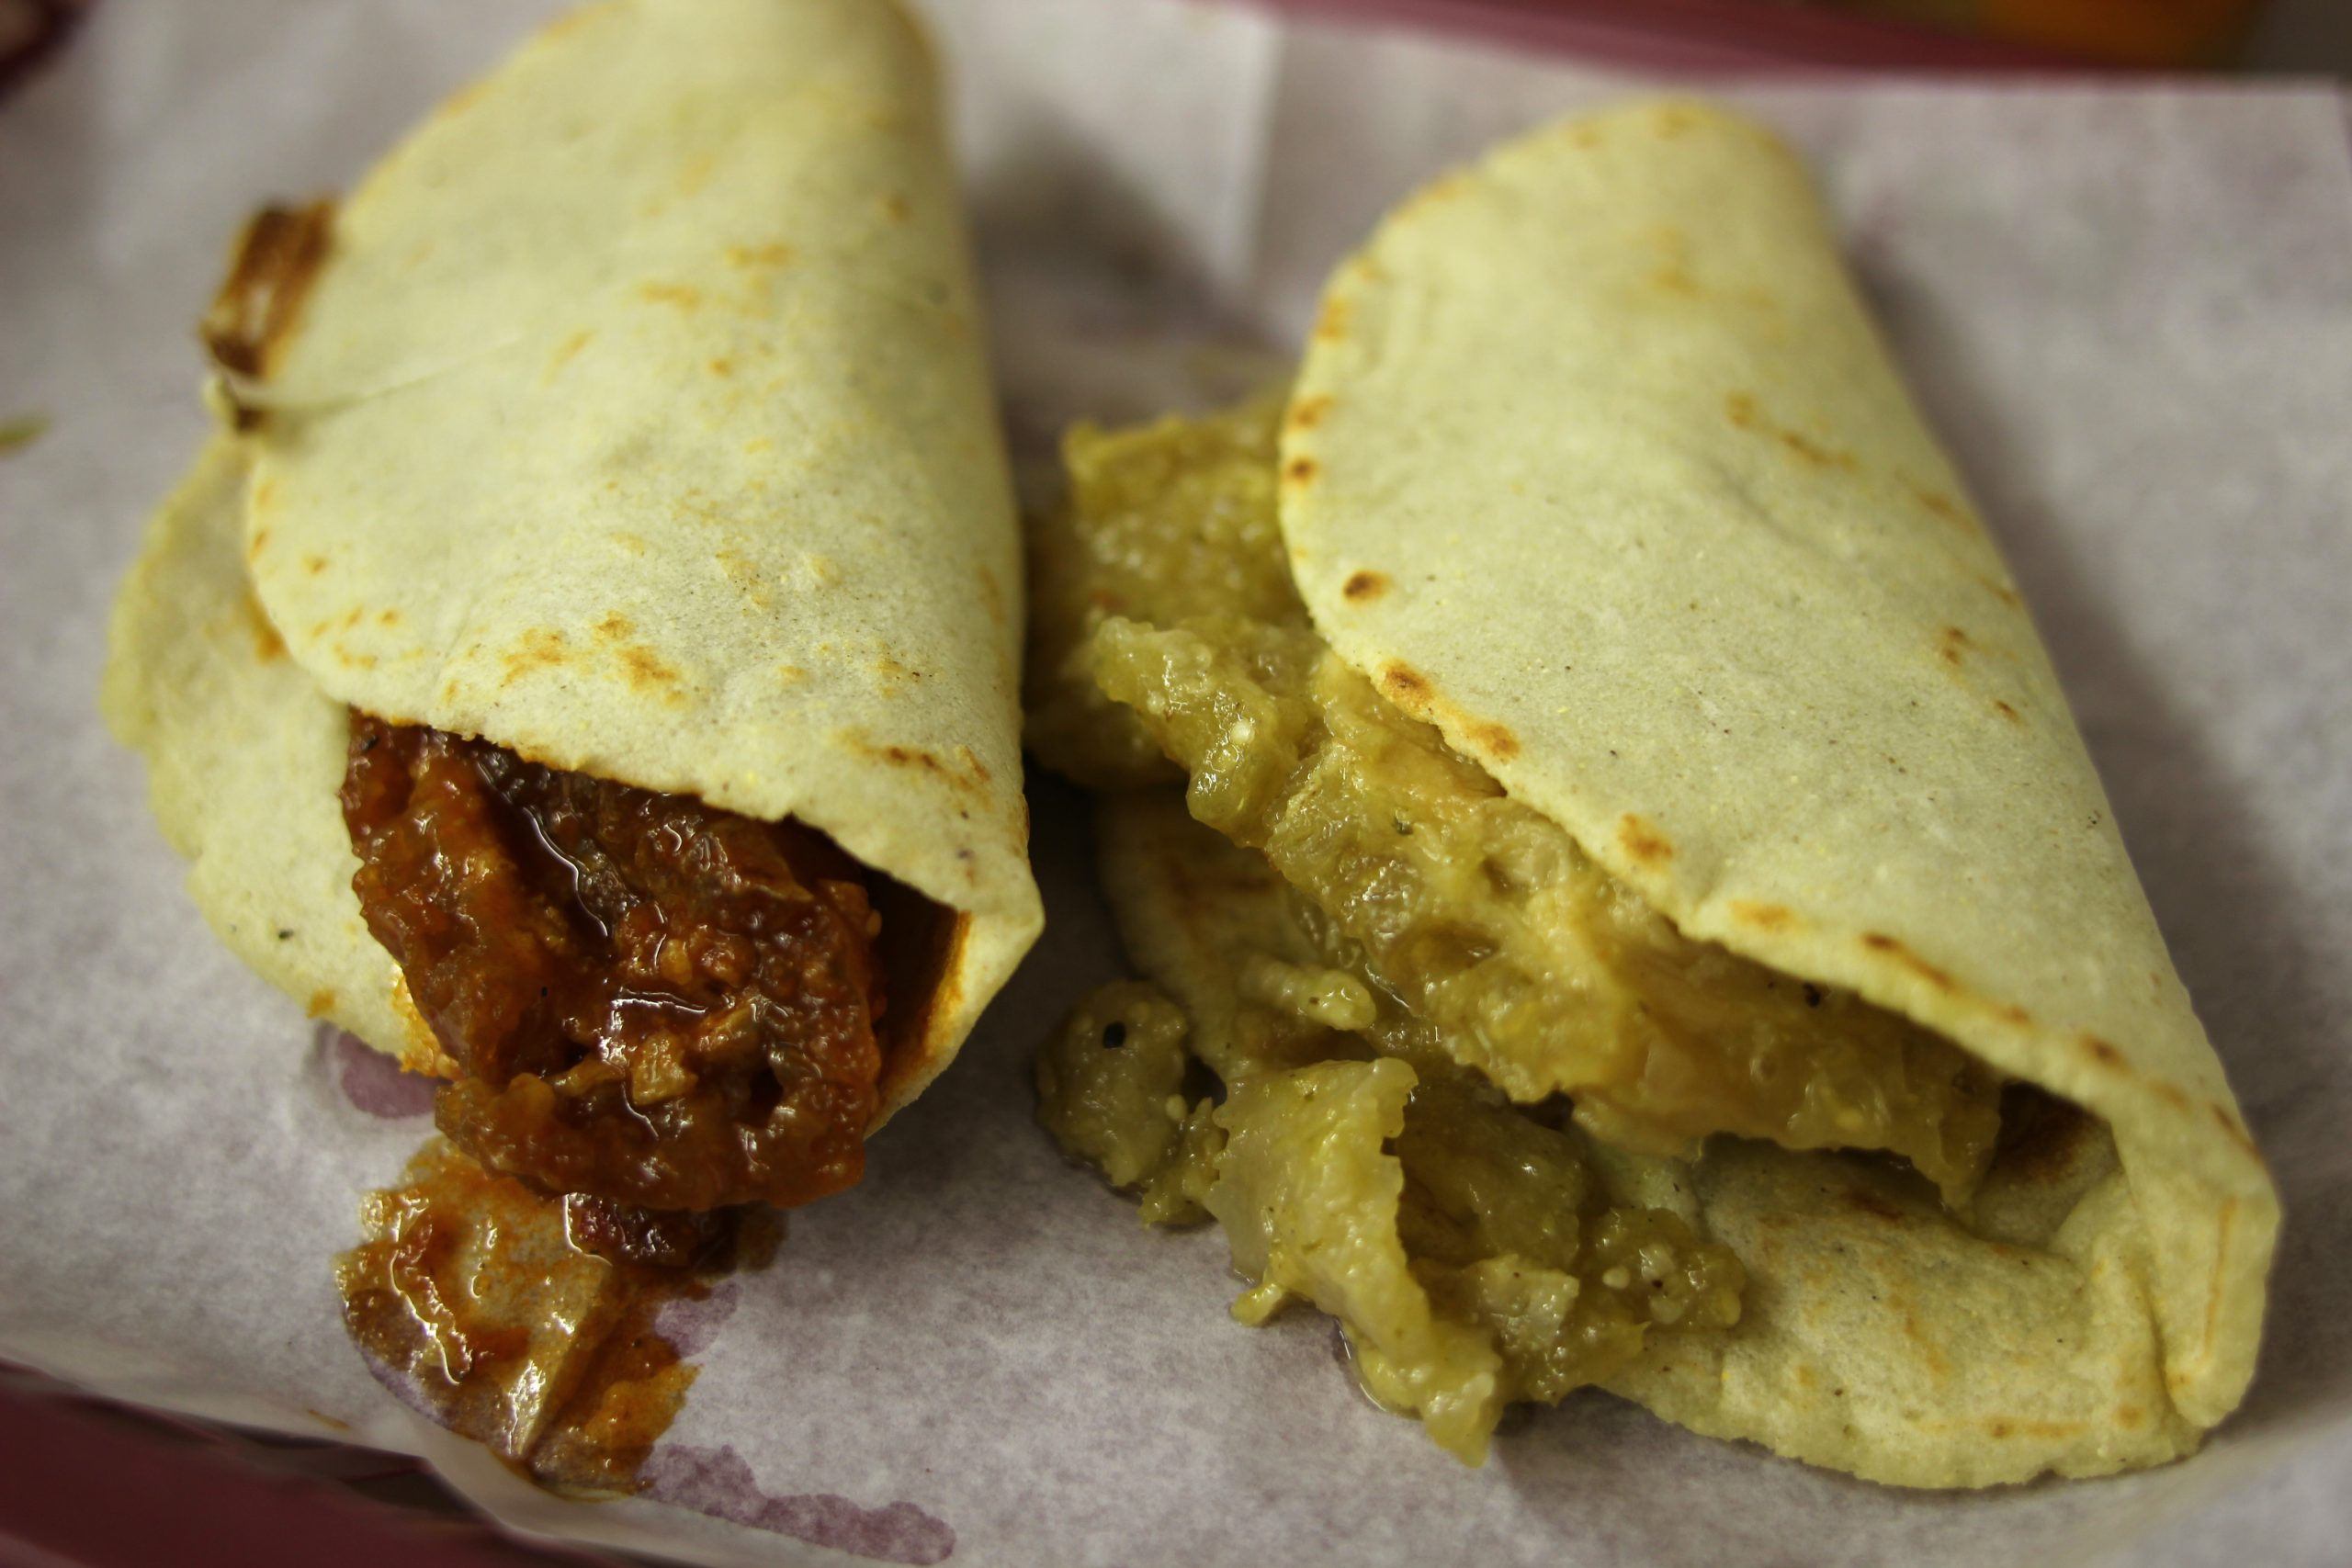 8. Carniceria Aguascalientes, 3132 W. 26th St. Handmade tortillas, chicharron tacos with red or green salsa